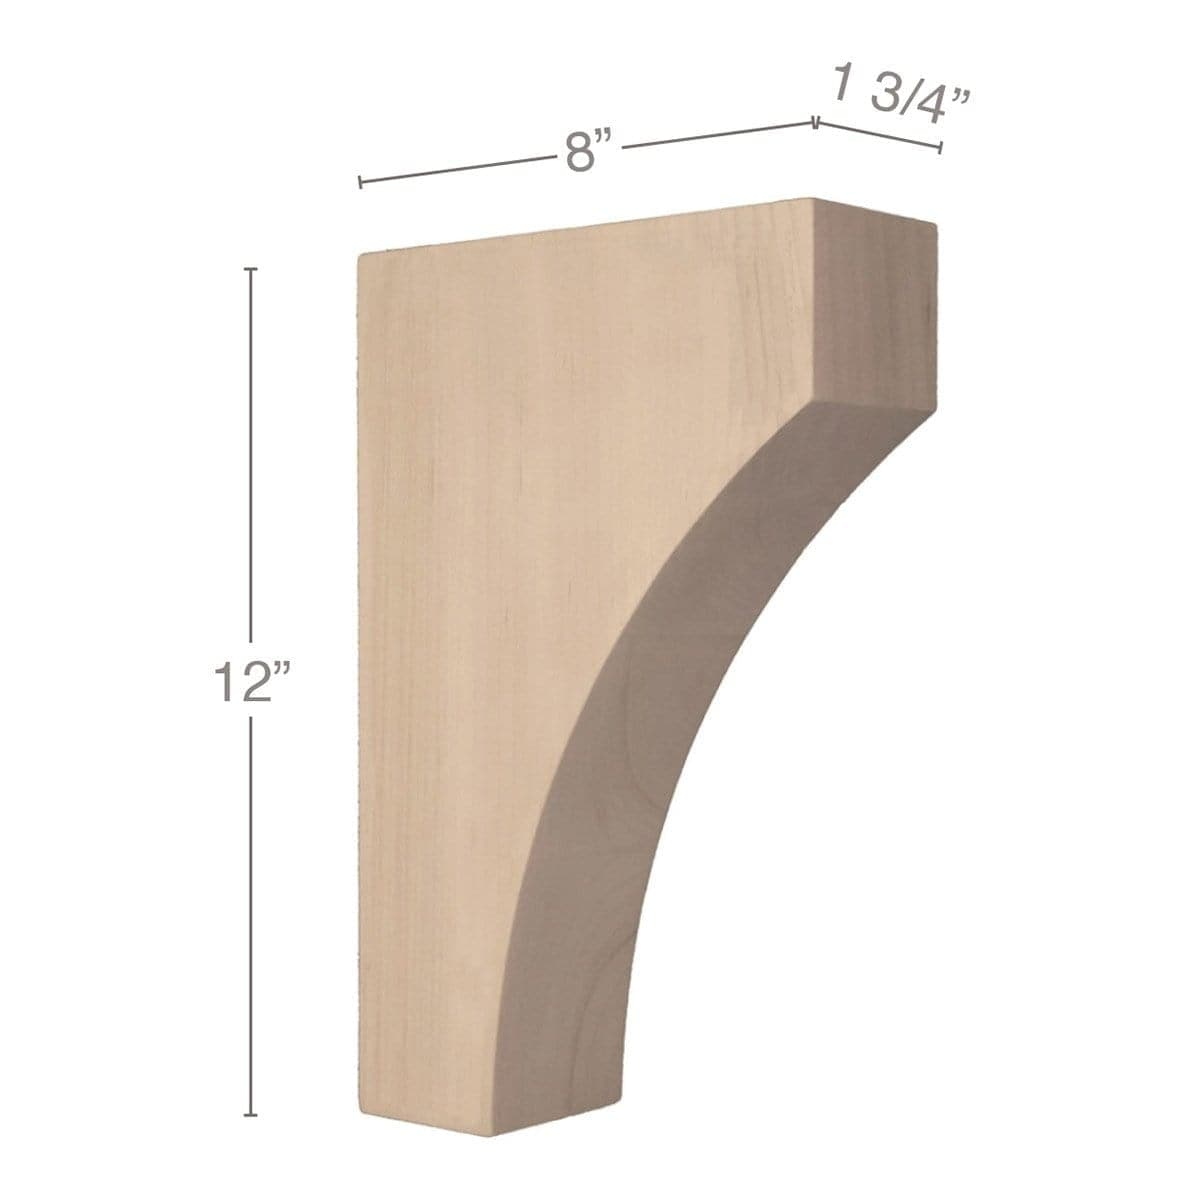 "Contemporary Large Bar Bracket Corbel, 1 3/4""w x 12""h x 8""d"